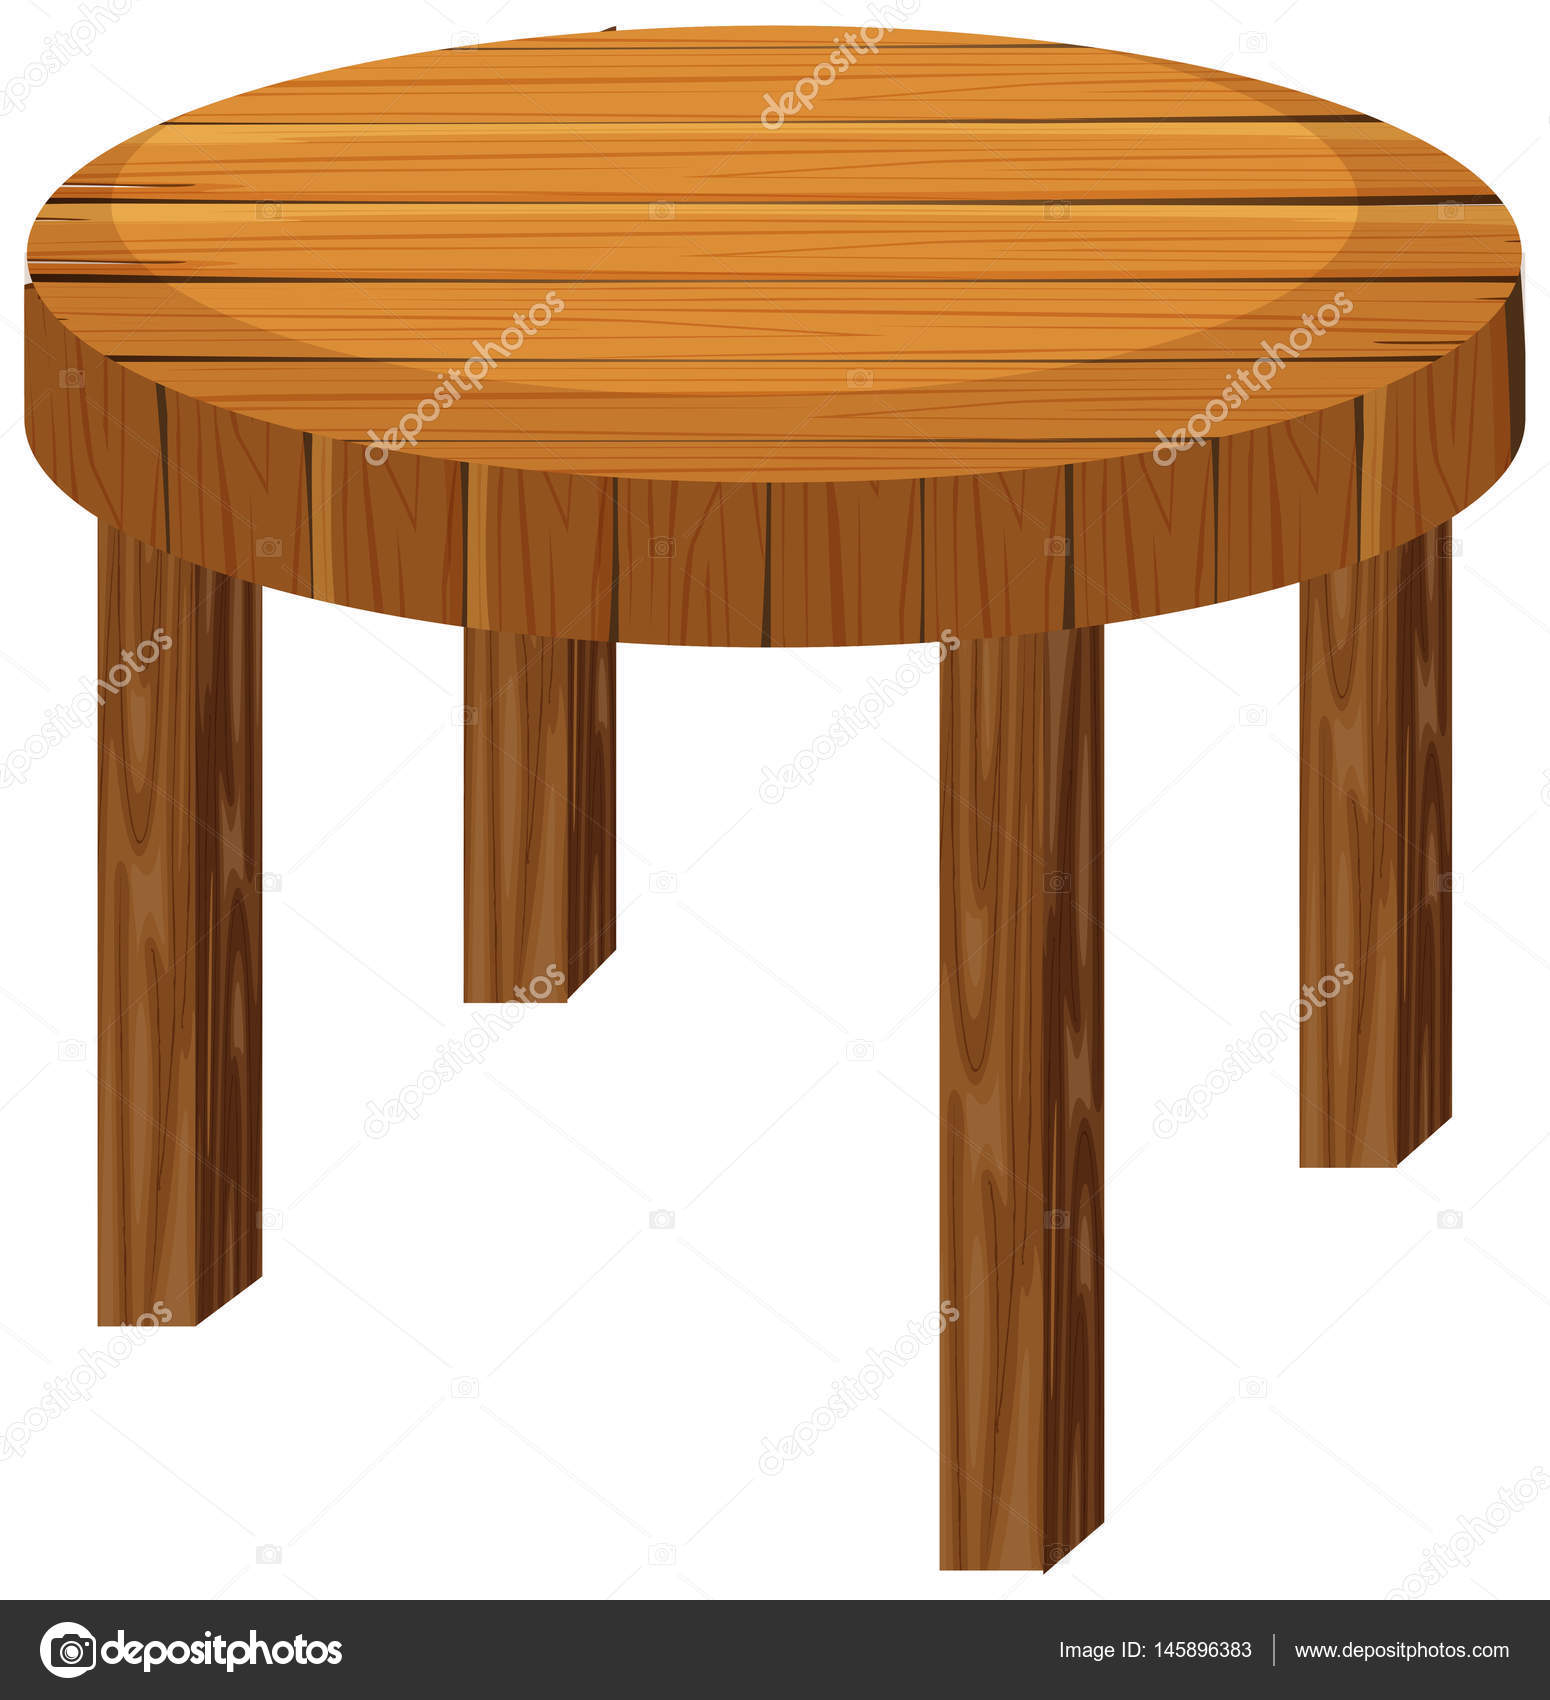 Picture of: Clipart Circle Table Round Wooden Table On White Background Stock Vector C Interactimages 145896383